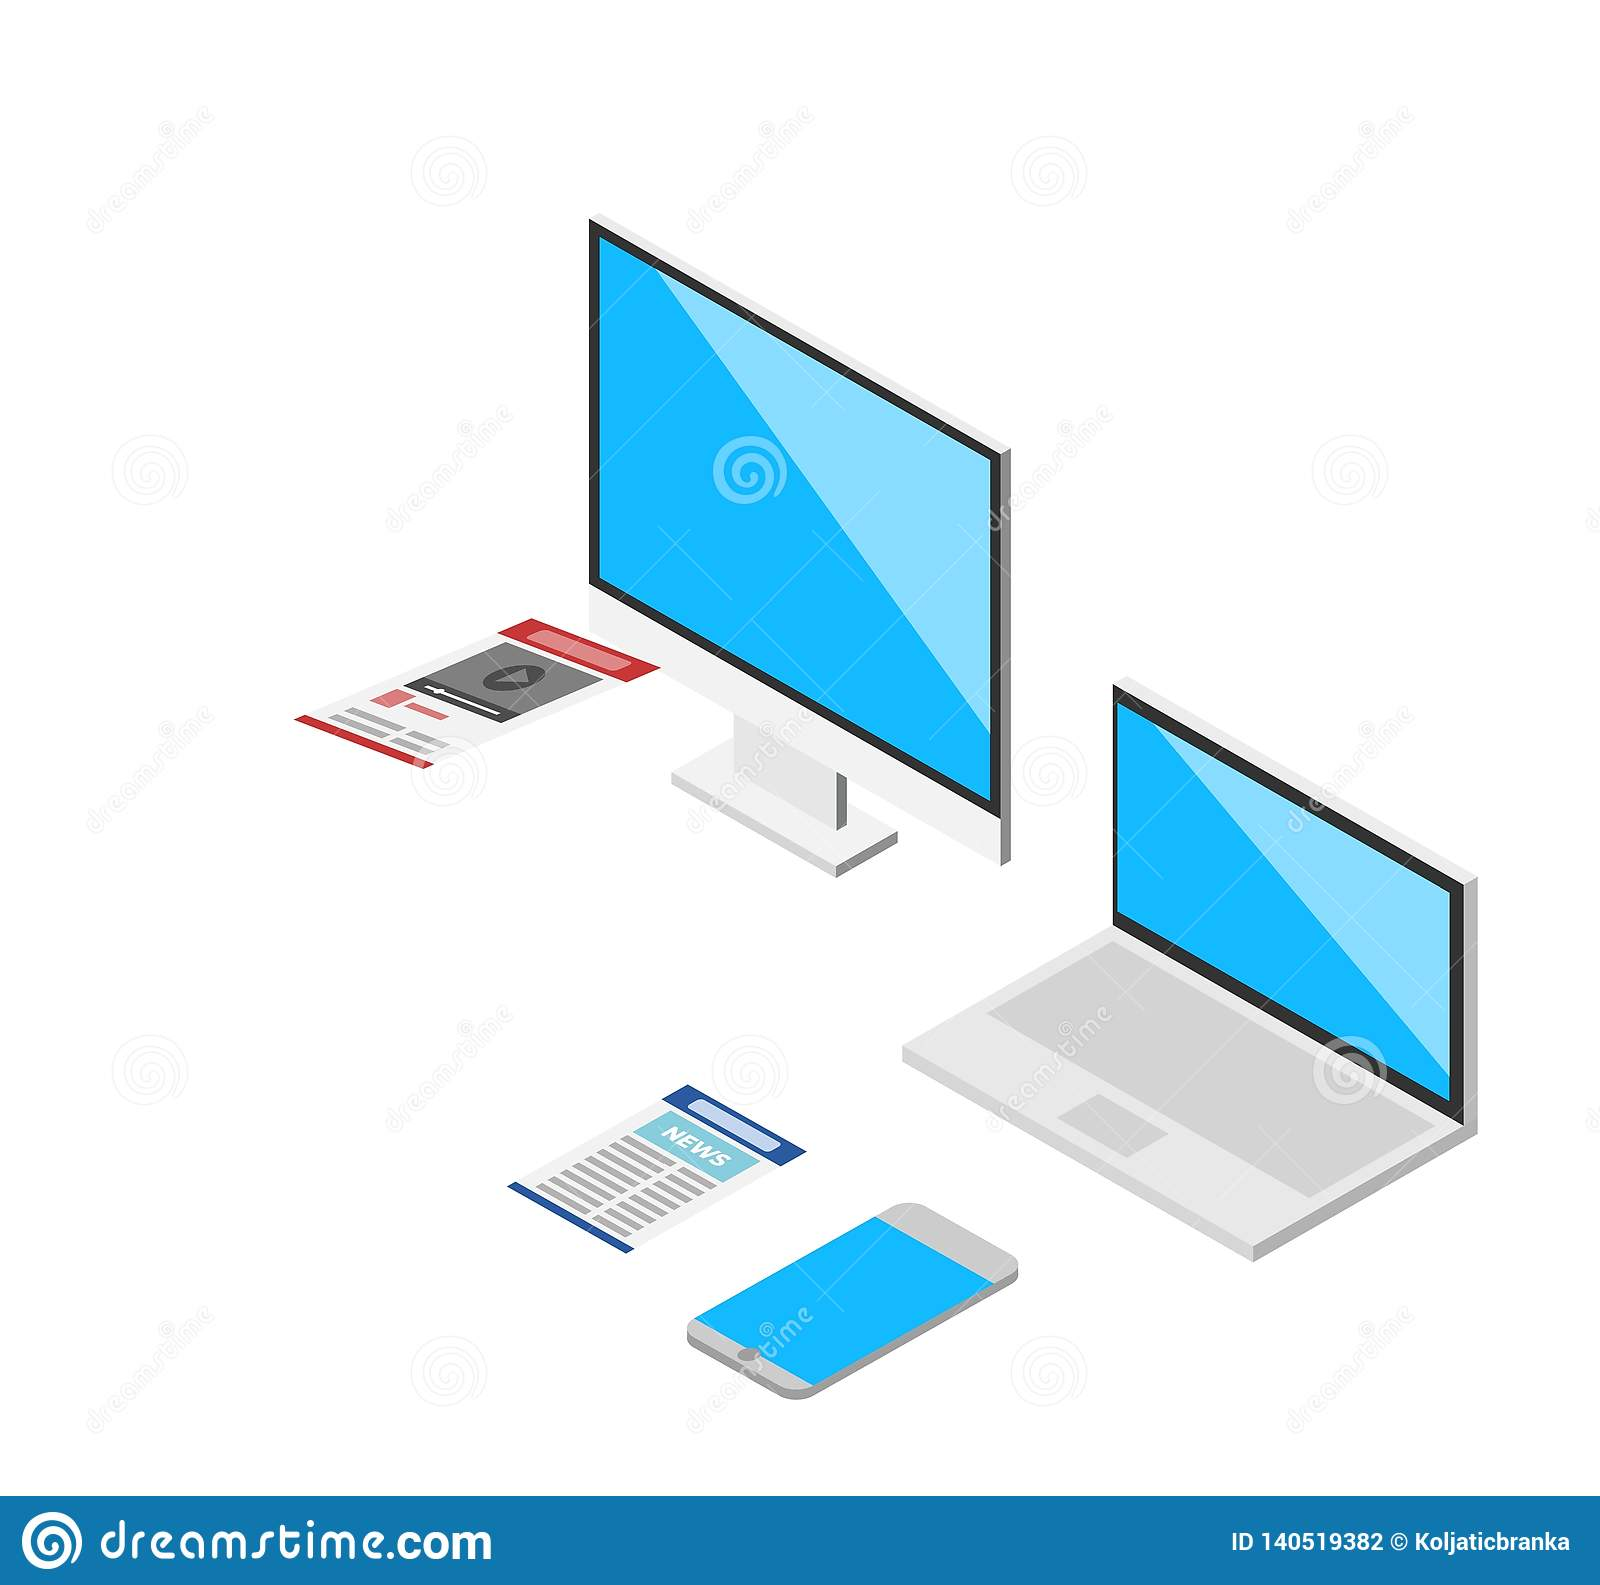 Isometric 3d laptop, tablet, smartphone, computer screen responsive web design vector elements.